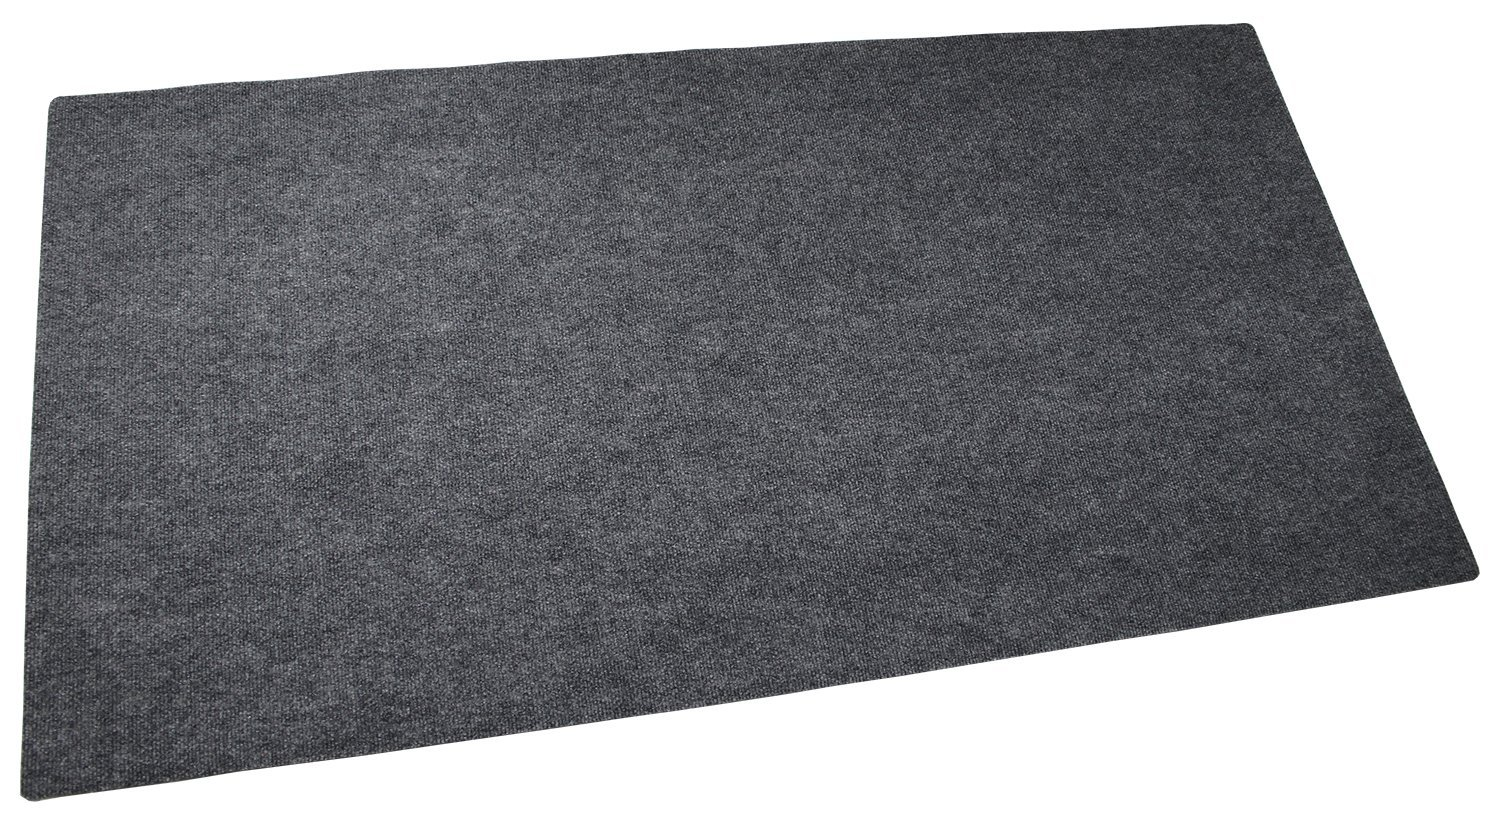 Drymate Gas Grill Mat, Premium BBQ Grill Mat - 30'' x 58'' - Size Extra Large Grill Pad - Contains Grill Splatter And (Protects Surface)